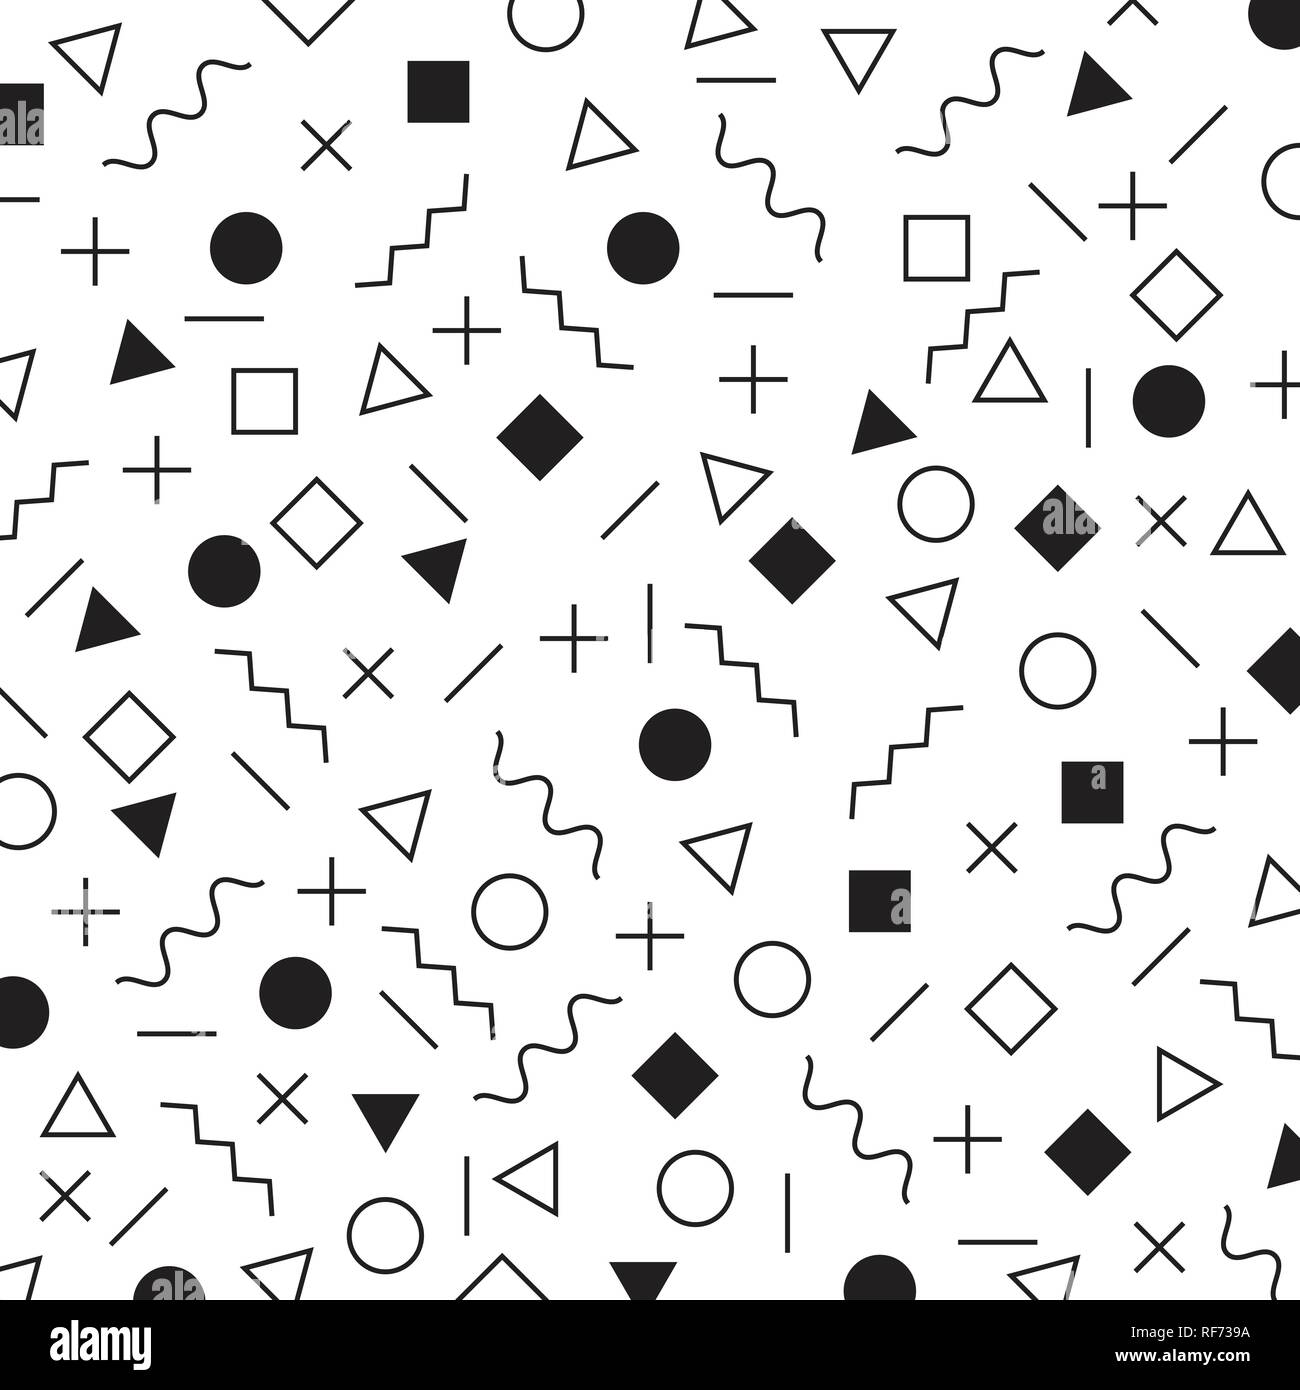 Black and white geometric elements memphis style pattern the